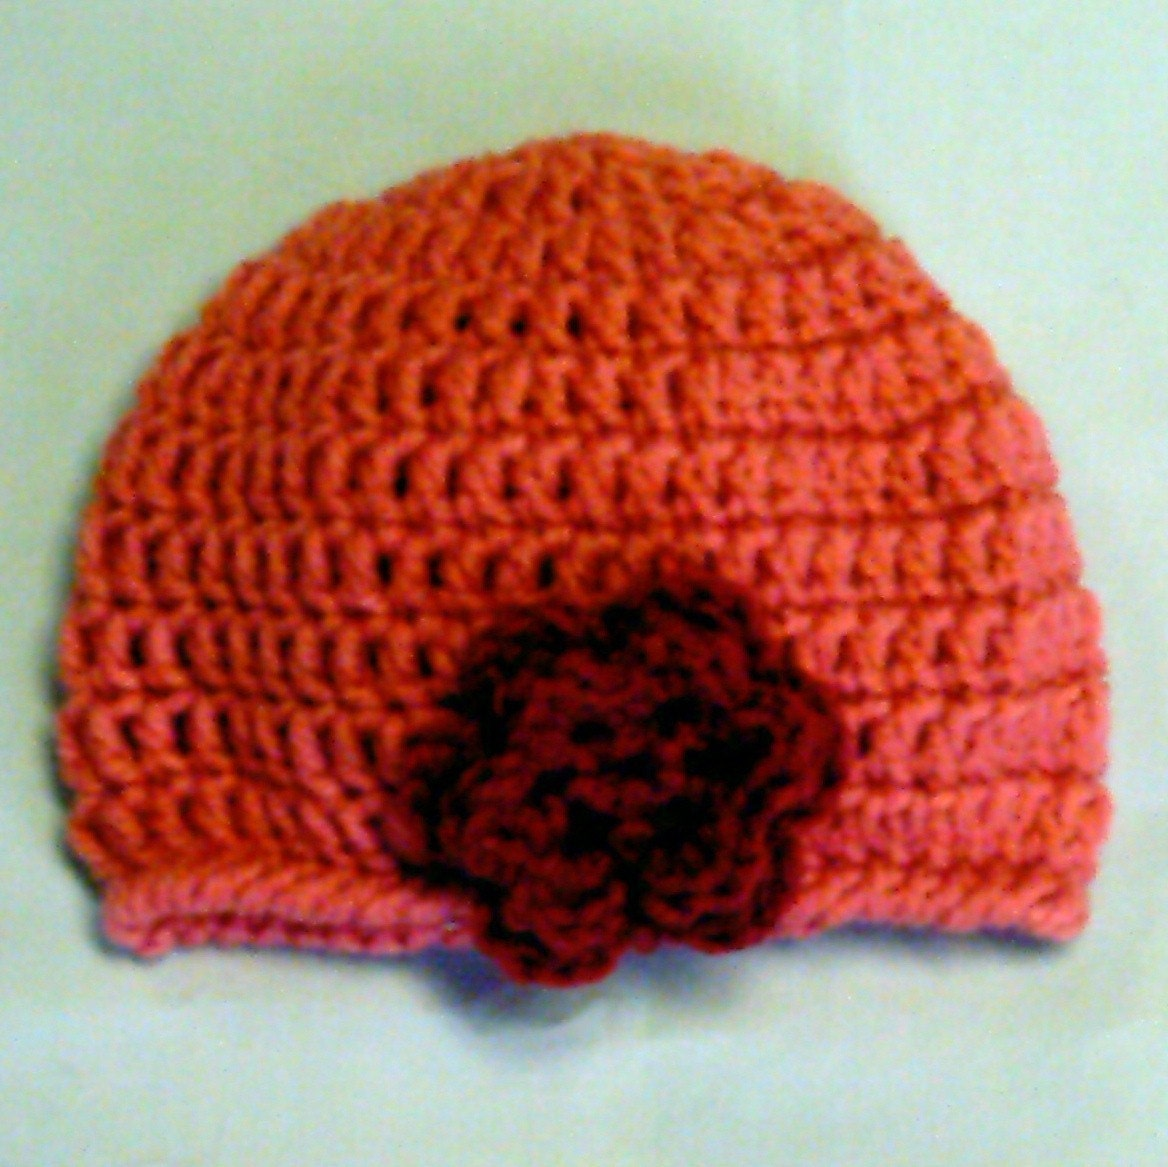 Flower Beanie Easy Crochet Pattern PDF by jillbeth on Etsy